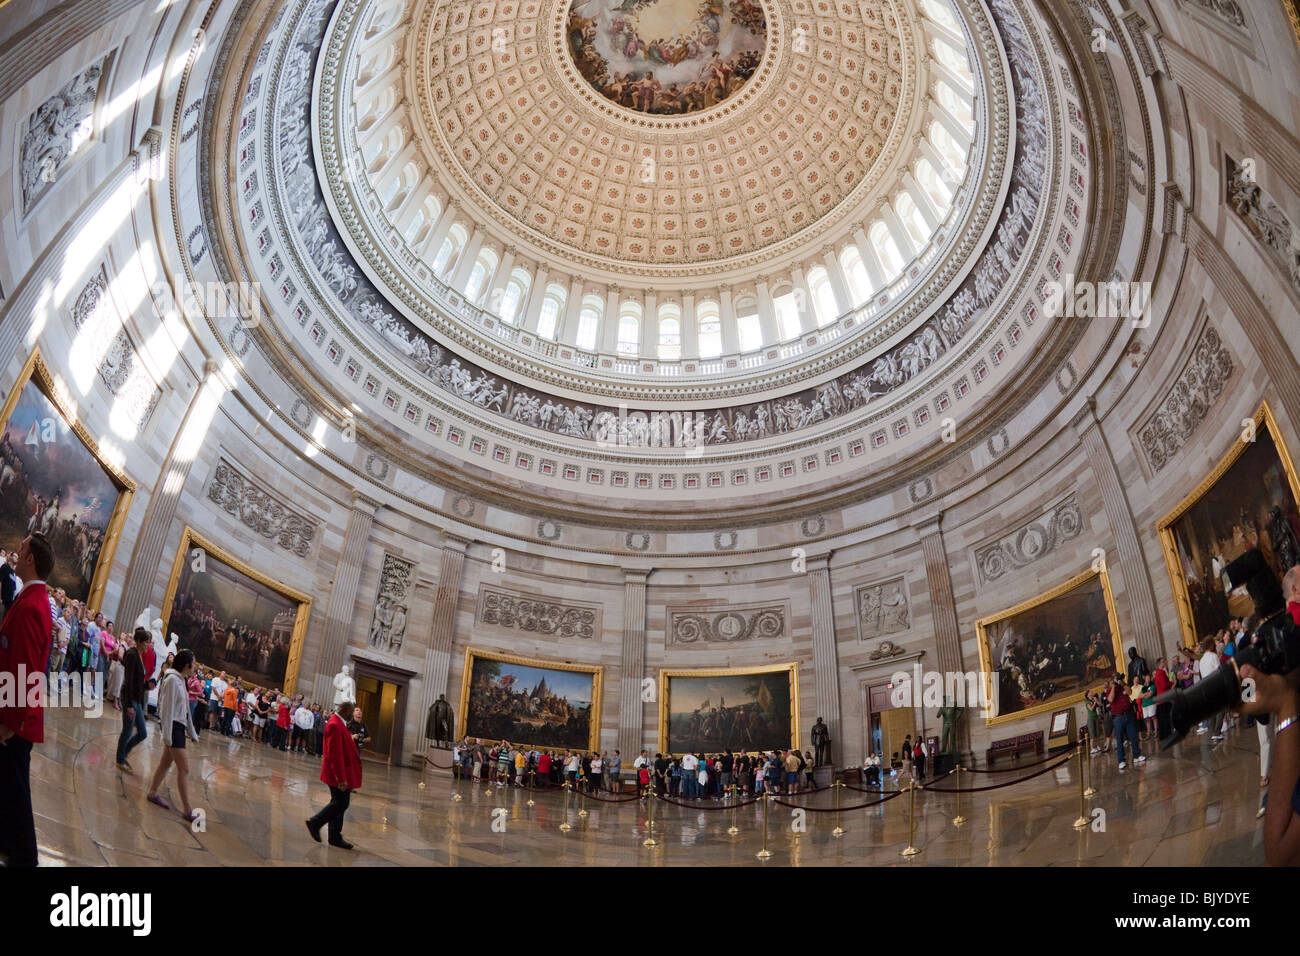 Visitors Tour The Rotunda Of The U S Capitol In